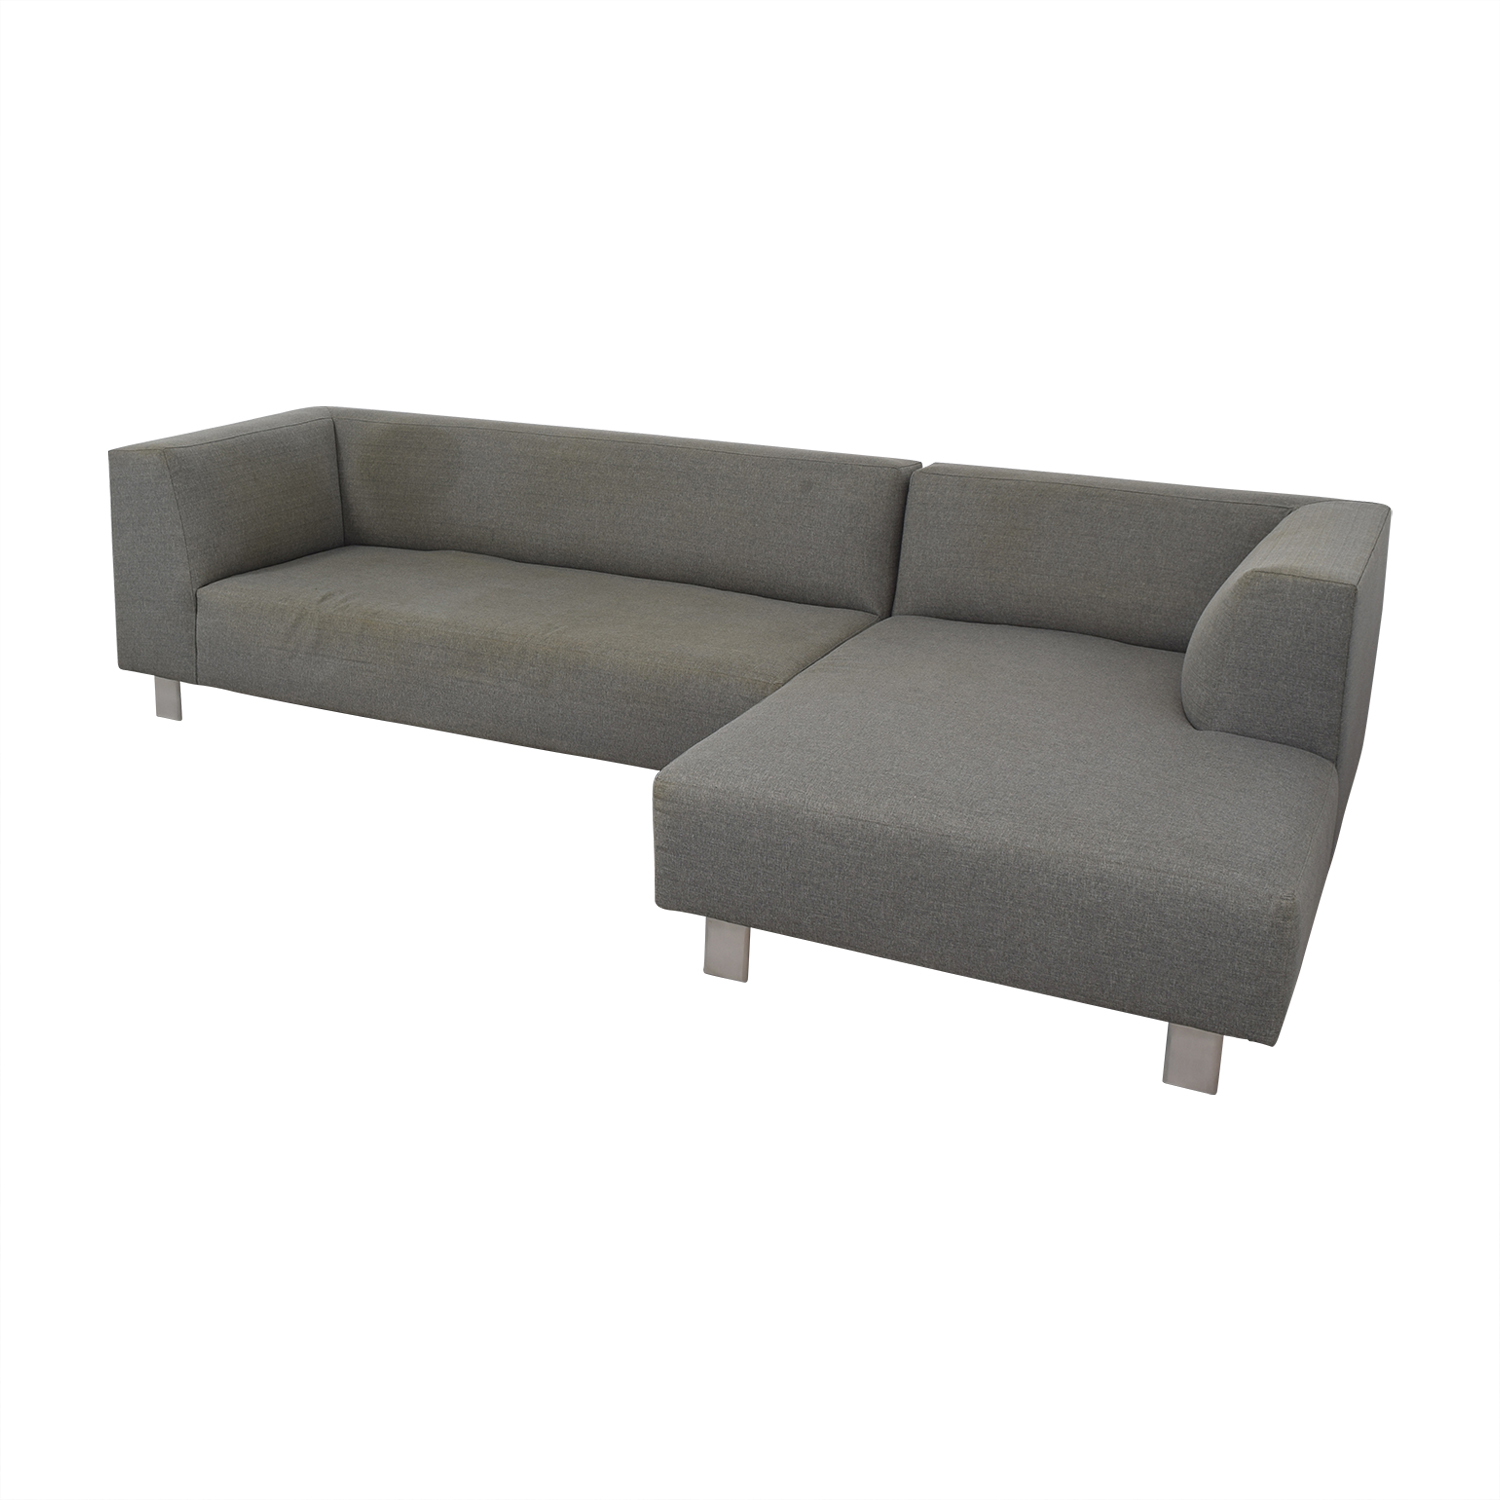 Room & Board Room & Board Grey Chaise Sectional on sale